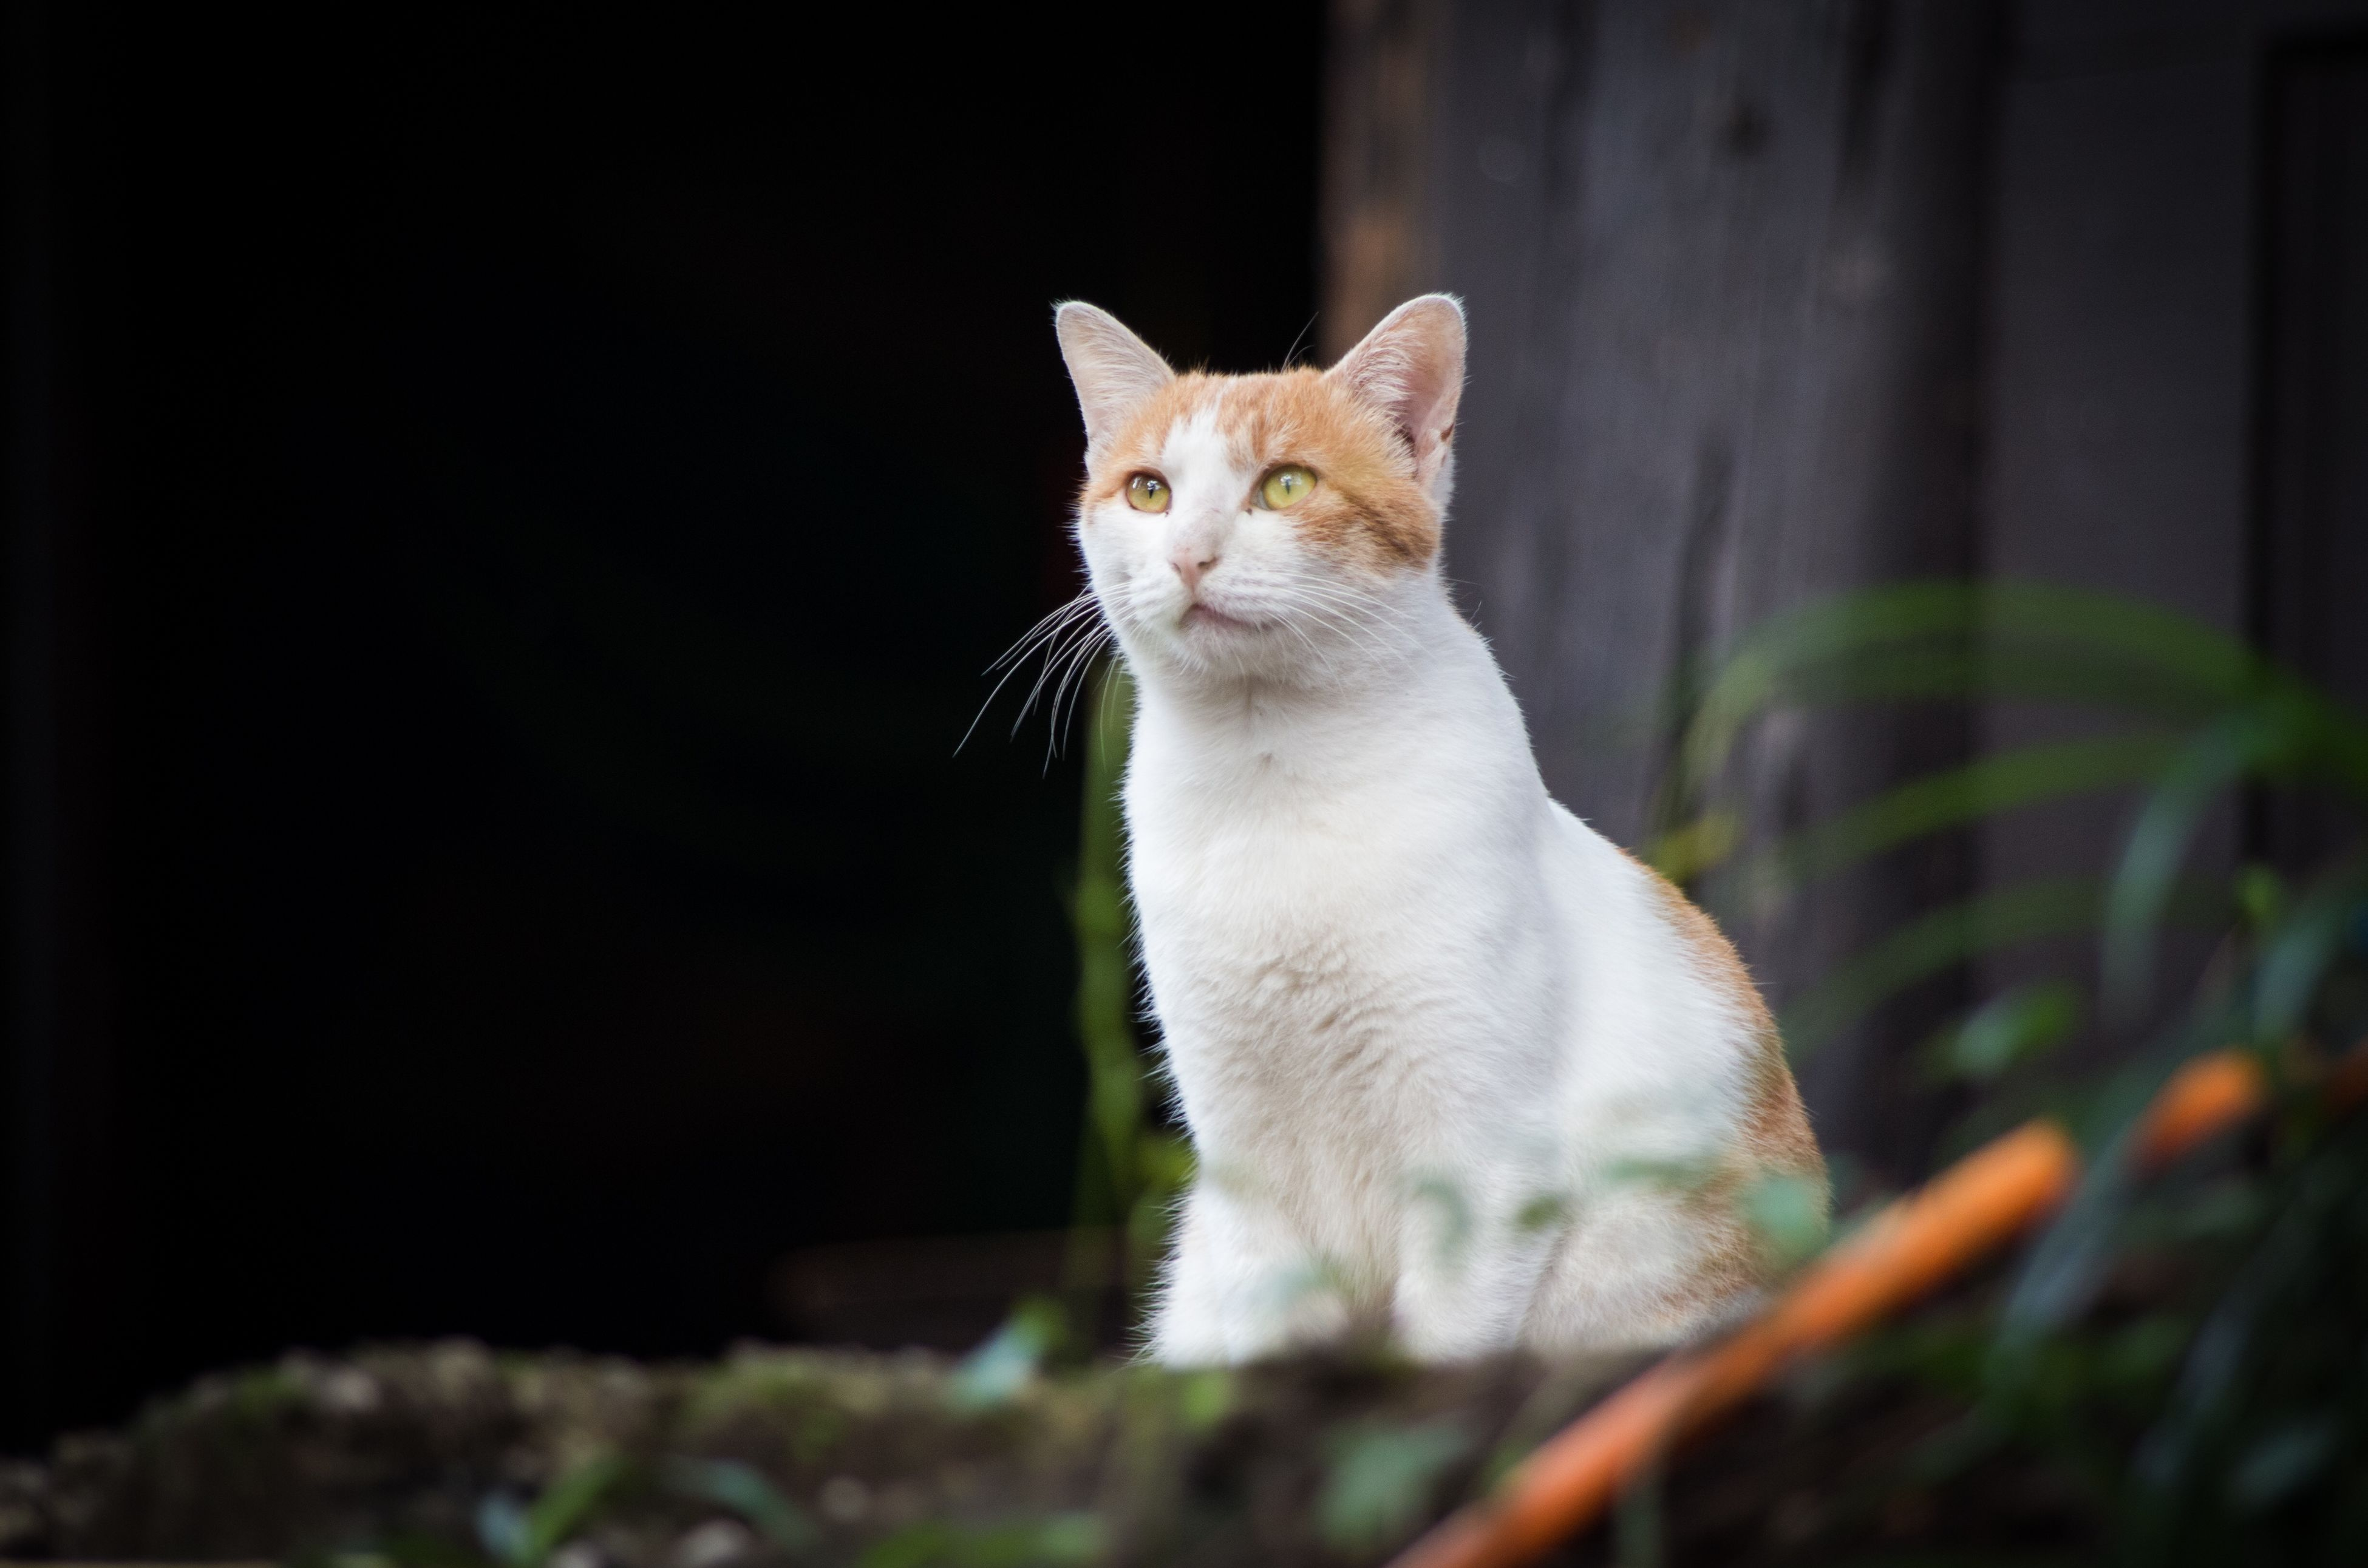 domestic cat, cat, pets, feline, one animal, animal themes, domestic animals, mammal, whisker, alertness, portrait, sitting, staring, looking away, close-up, selective focus, no people, focus on foreground, curiosity